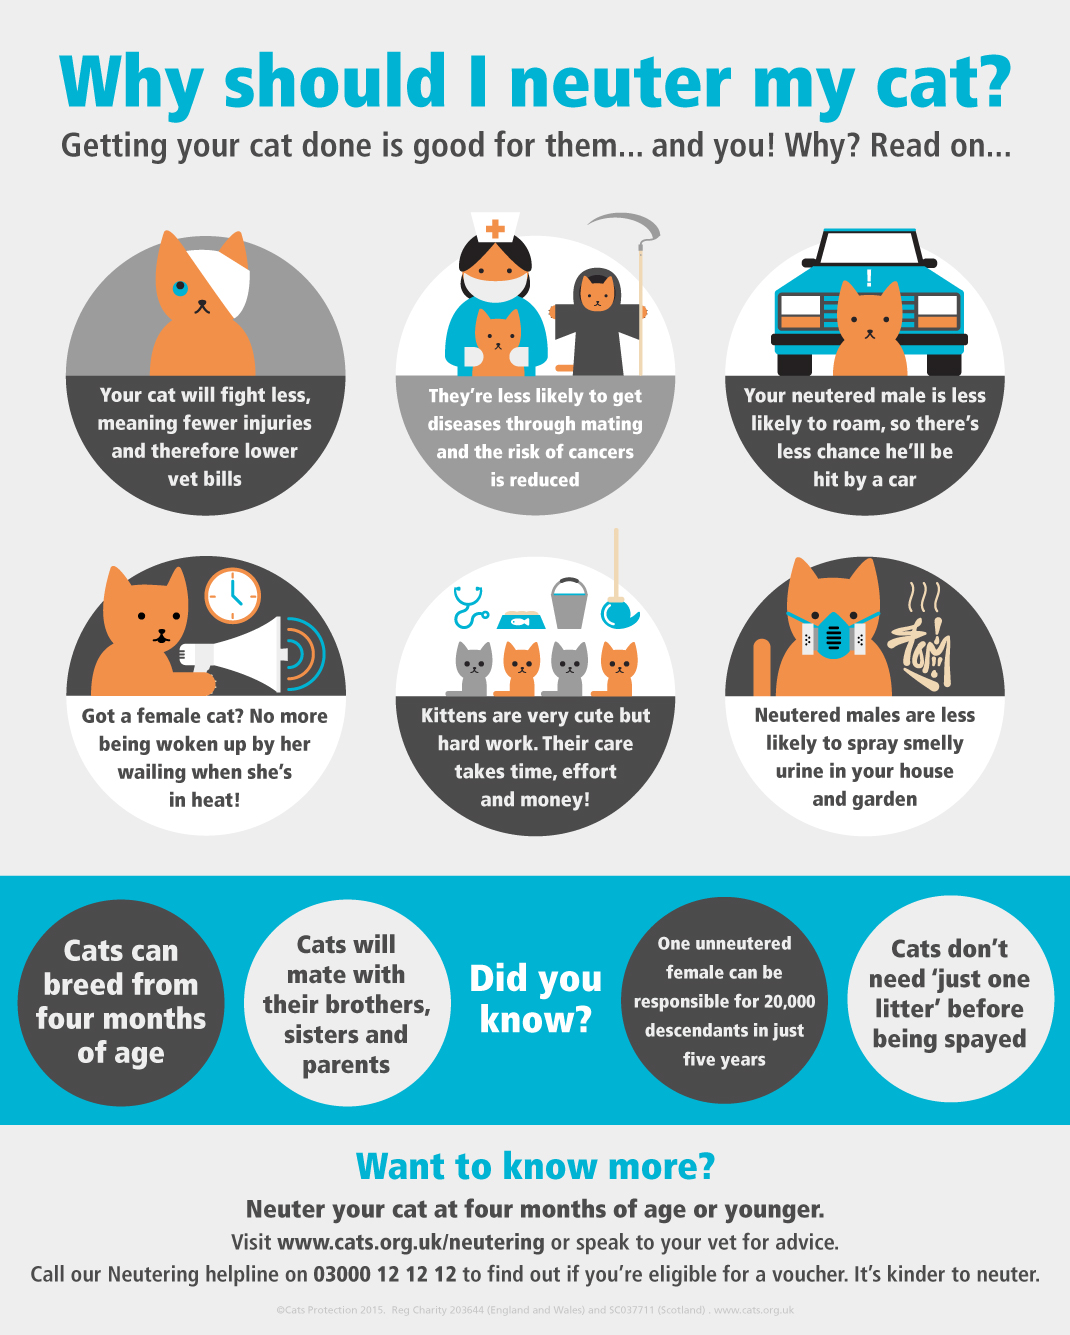 Neutering visual guide - Why should I neuter my cat?